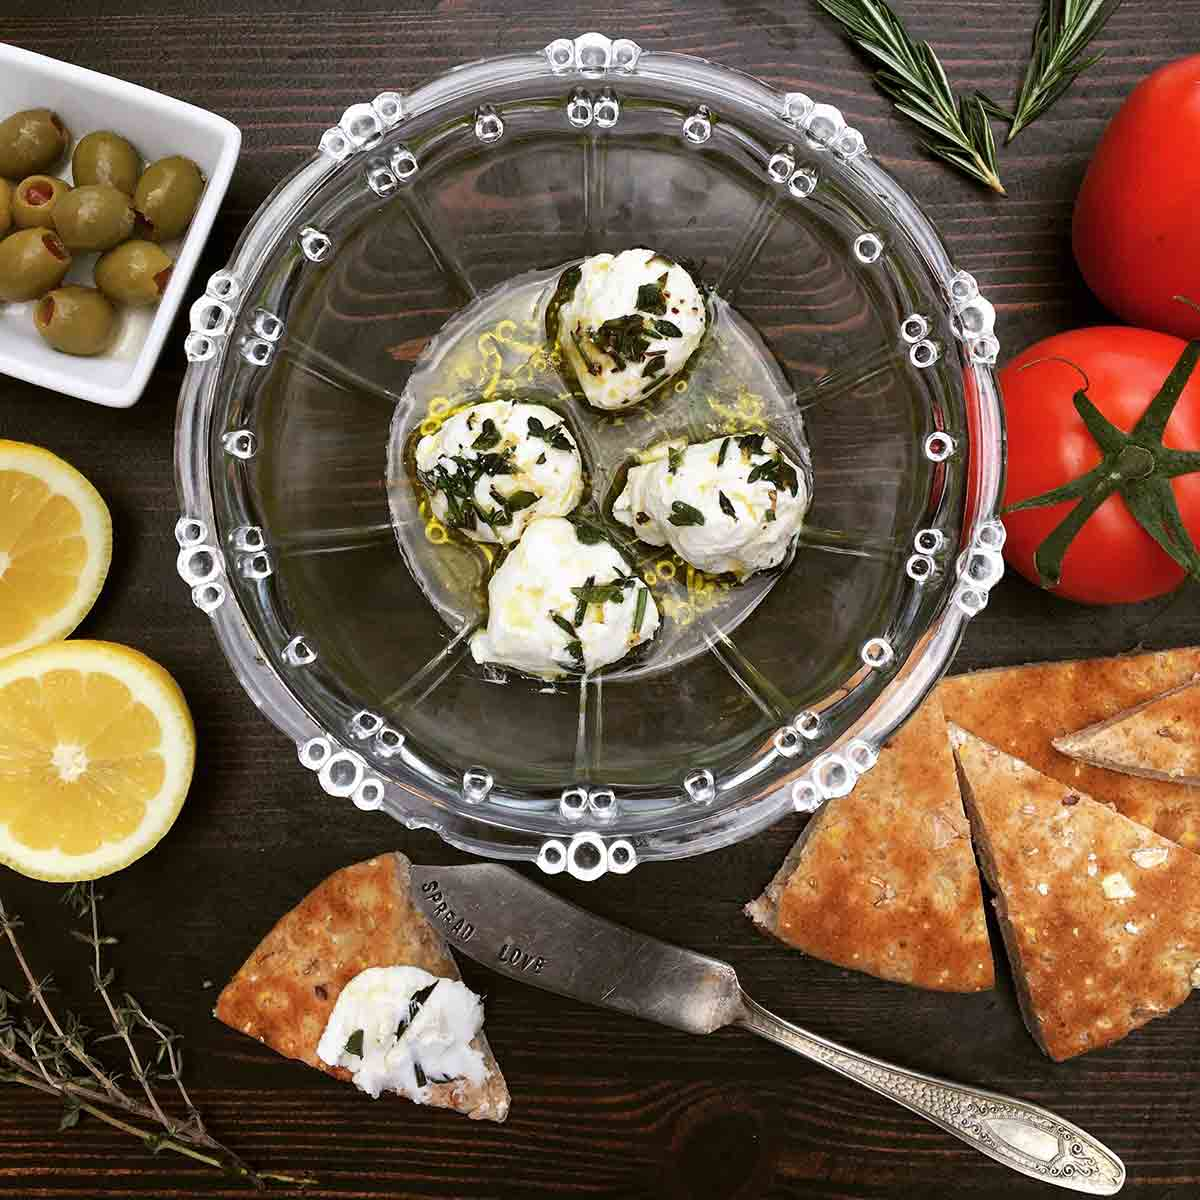 labneh in a bowl with tomatoes and pita bread